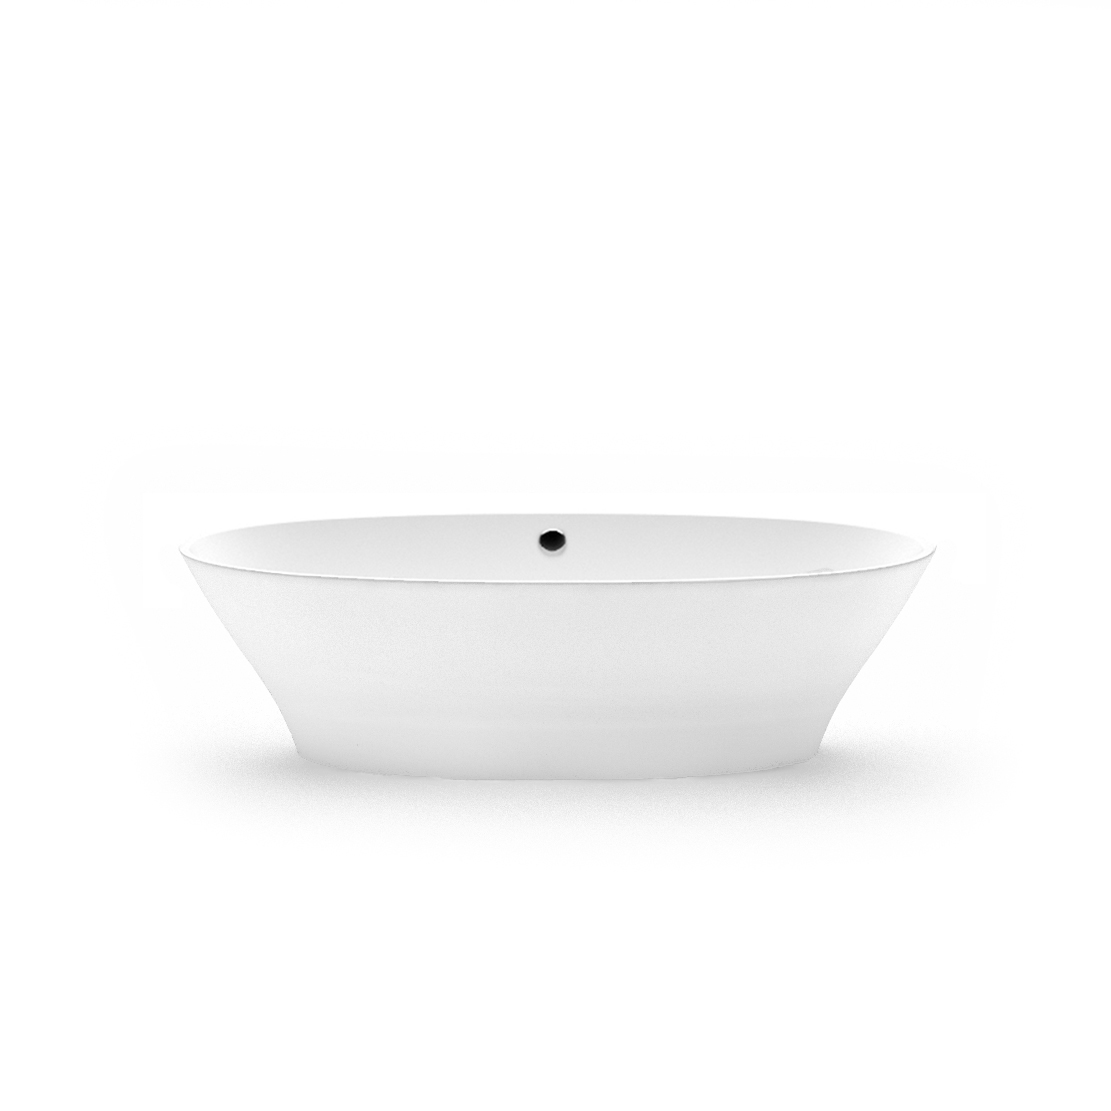 Freestanding bathtub Galatea 2 fr